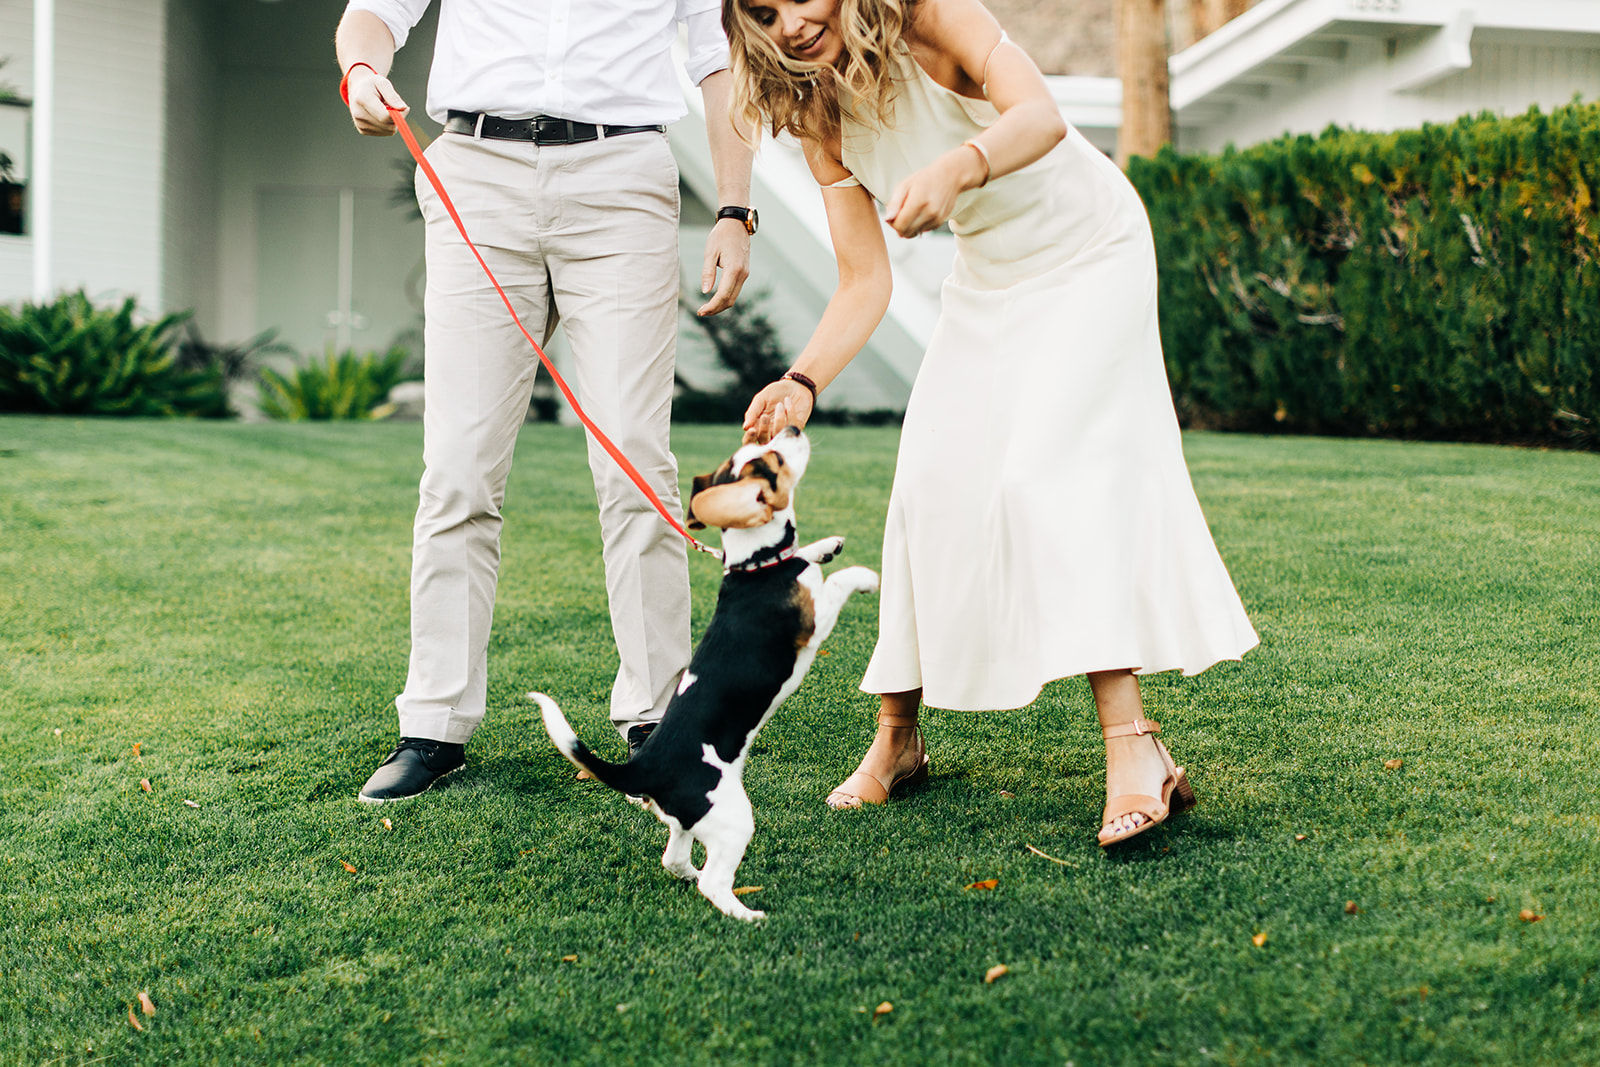 Paulina-Drew_Palm-Springs-Engagement-Photos_Clarisse-Rae_Southern-California-Wedding-Photographer-4